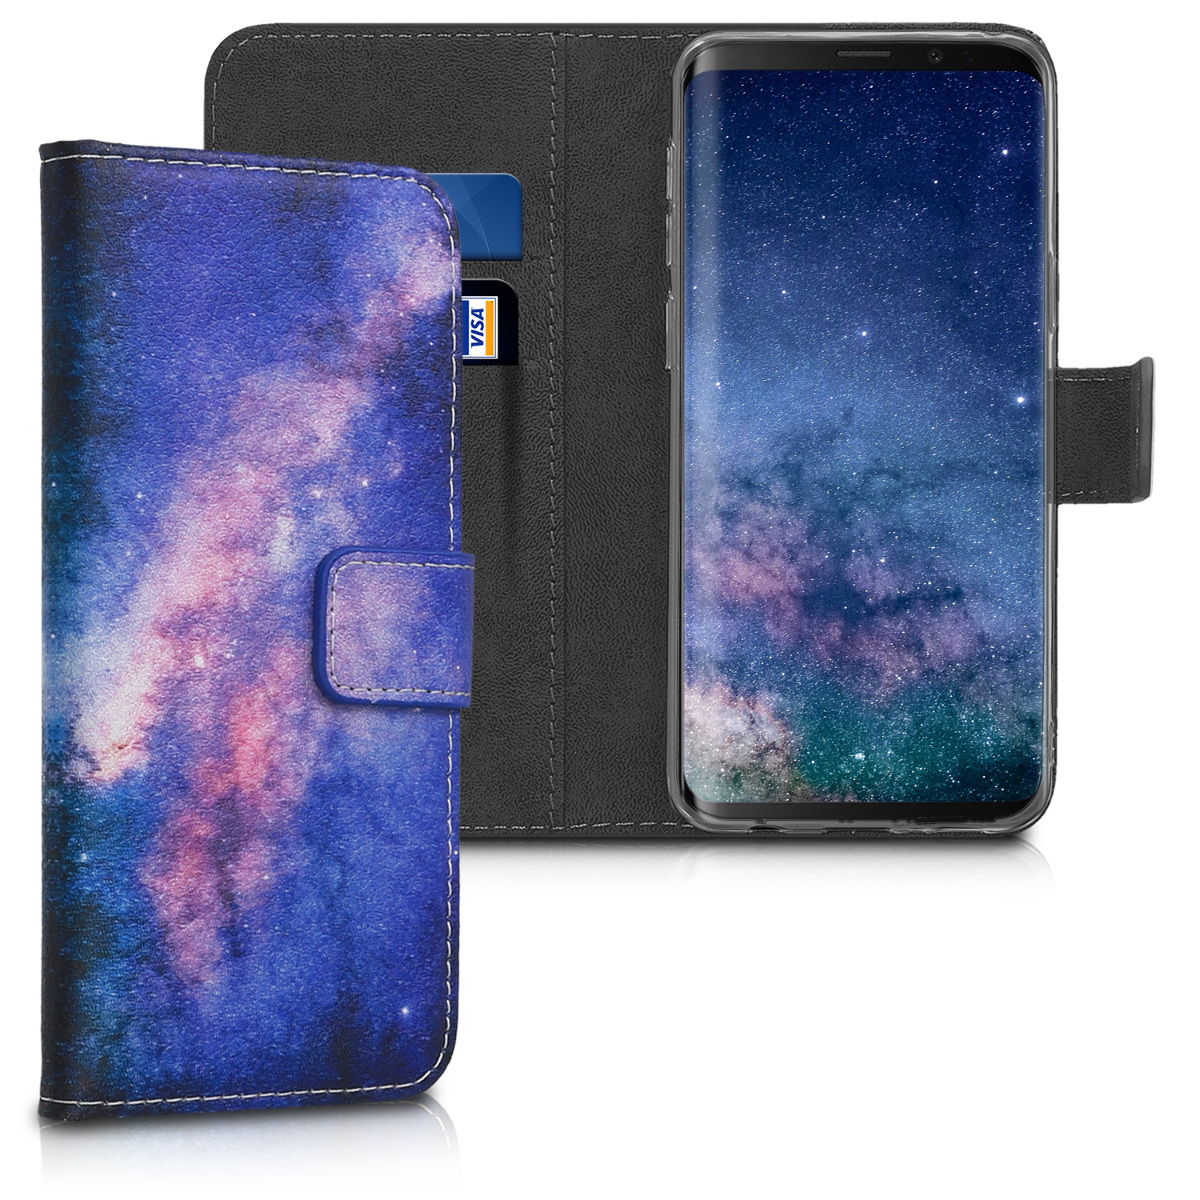 Pouzdro peněženka pro Samsung Galaxy S9 - PU Leather Flip Cover with Card Slots and Stand - Starry Galaxy Light Pink / Dark Pink / Dark Blue